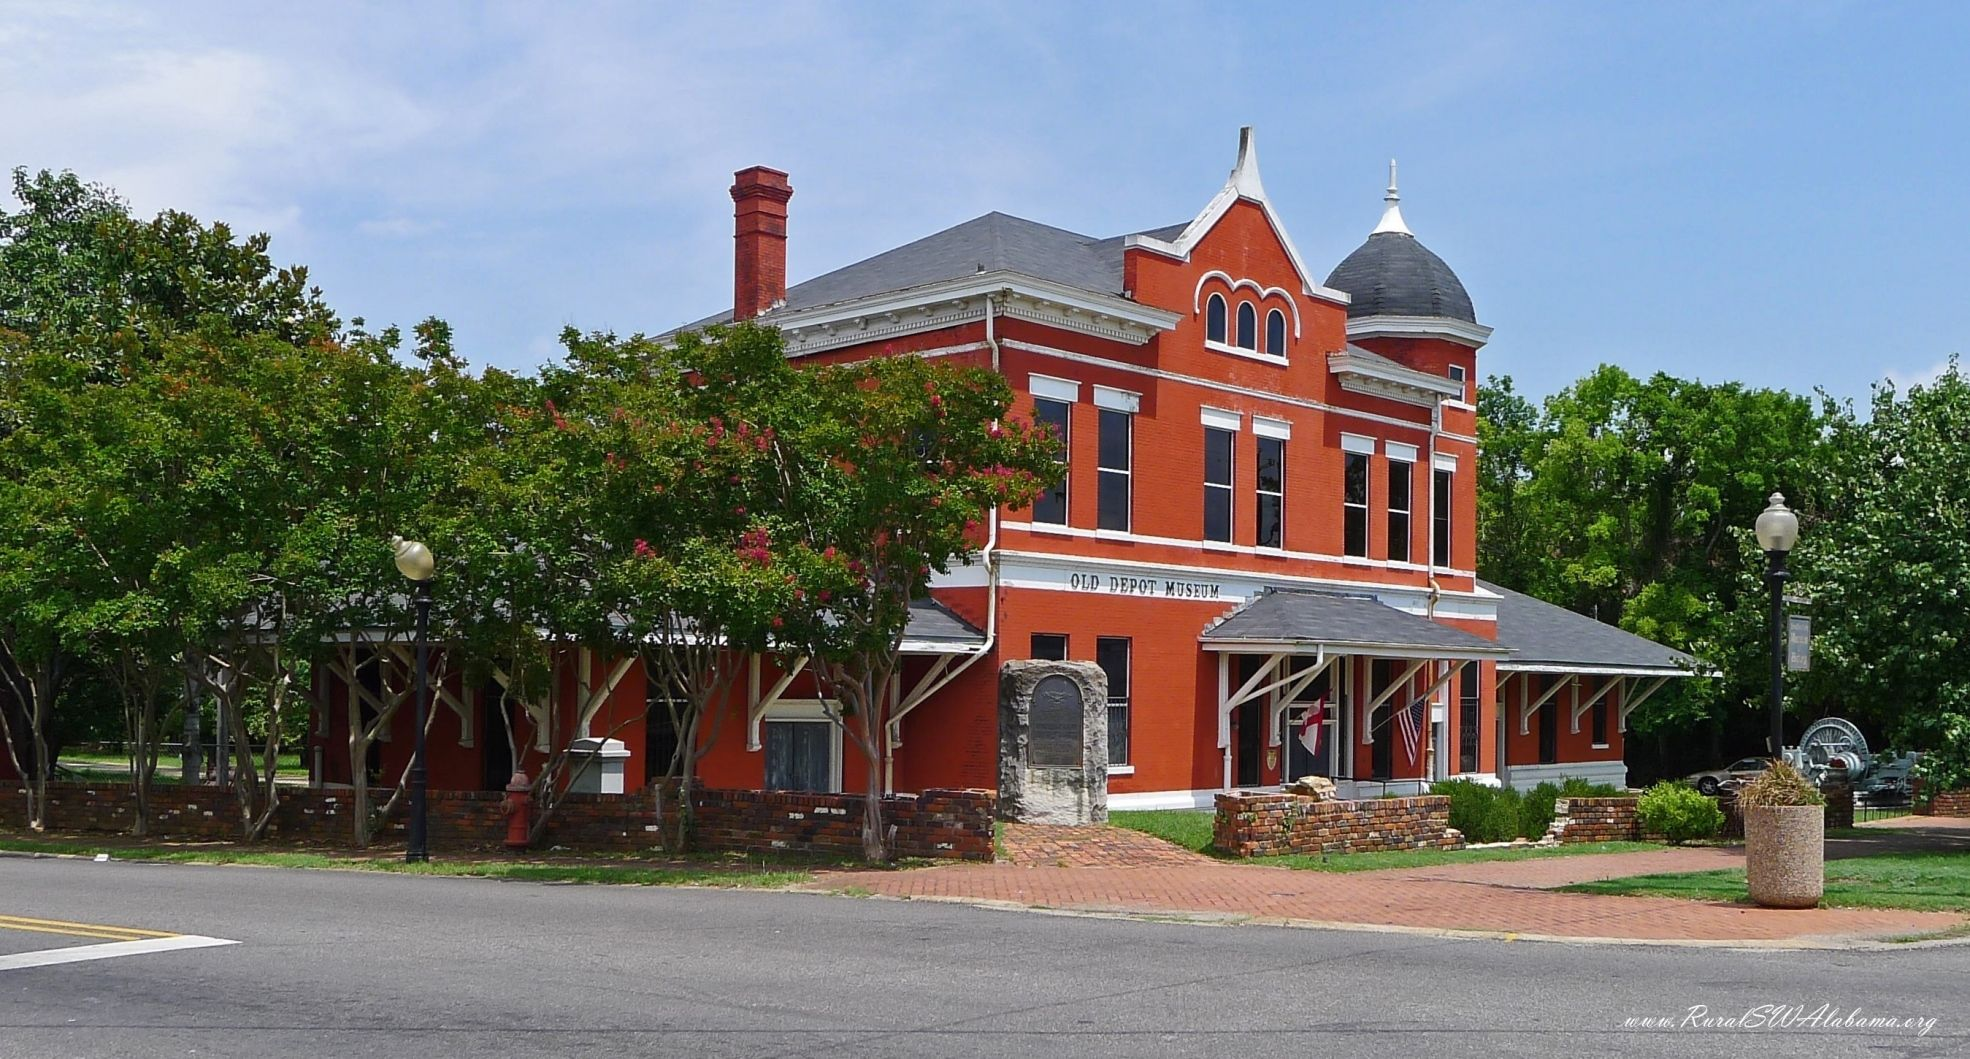 Old Depot Museum At Selma Al Building Built Ca 1890 Listed On The Nrhp Ruralswalabama Sweet Home Alabama Selma Selma Alabama